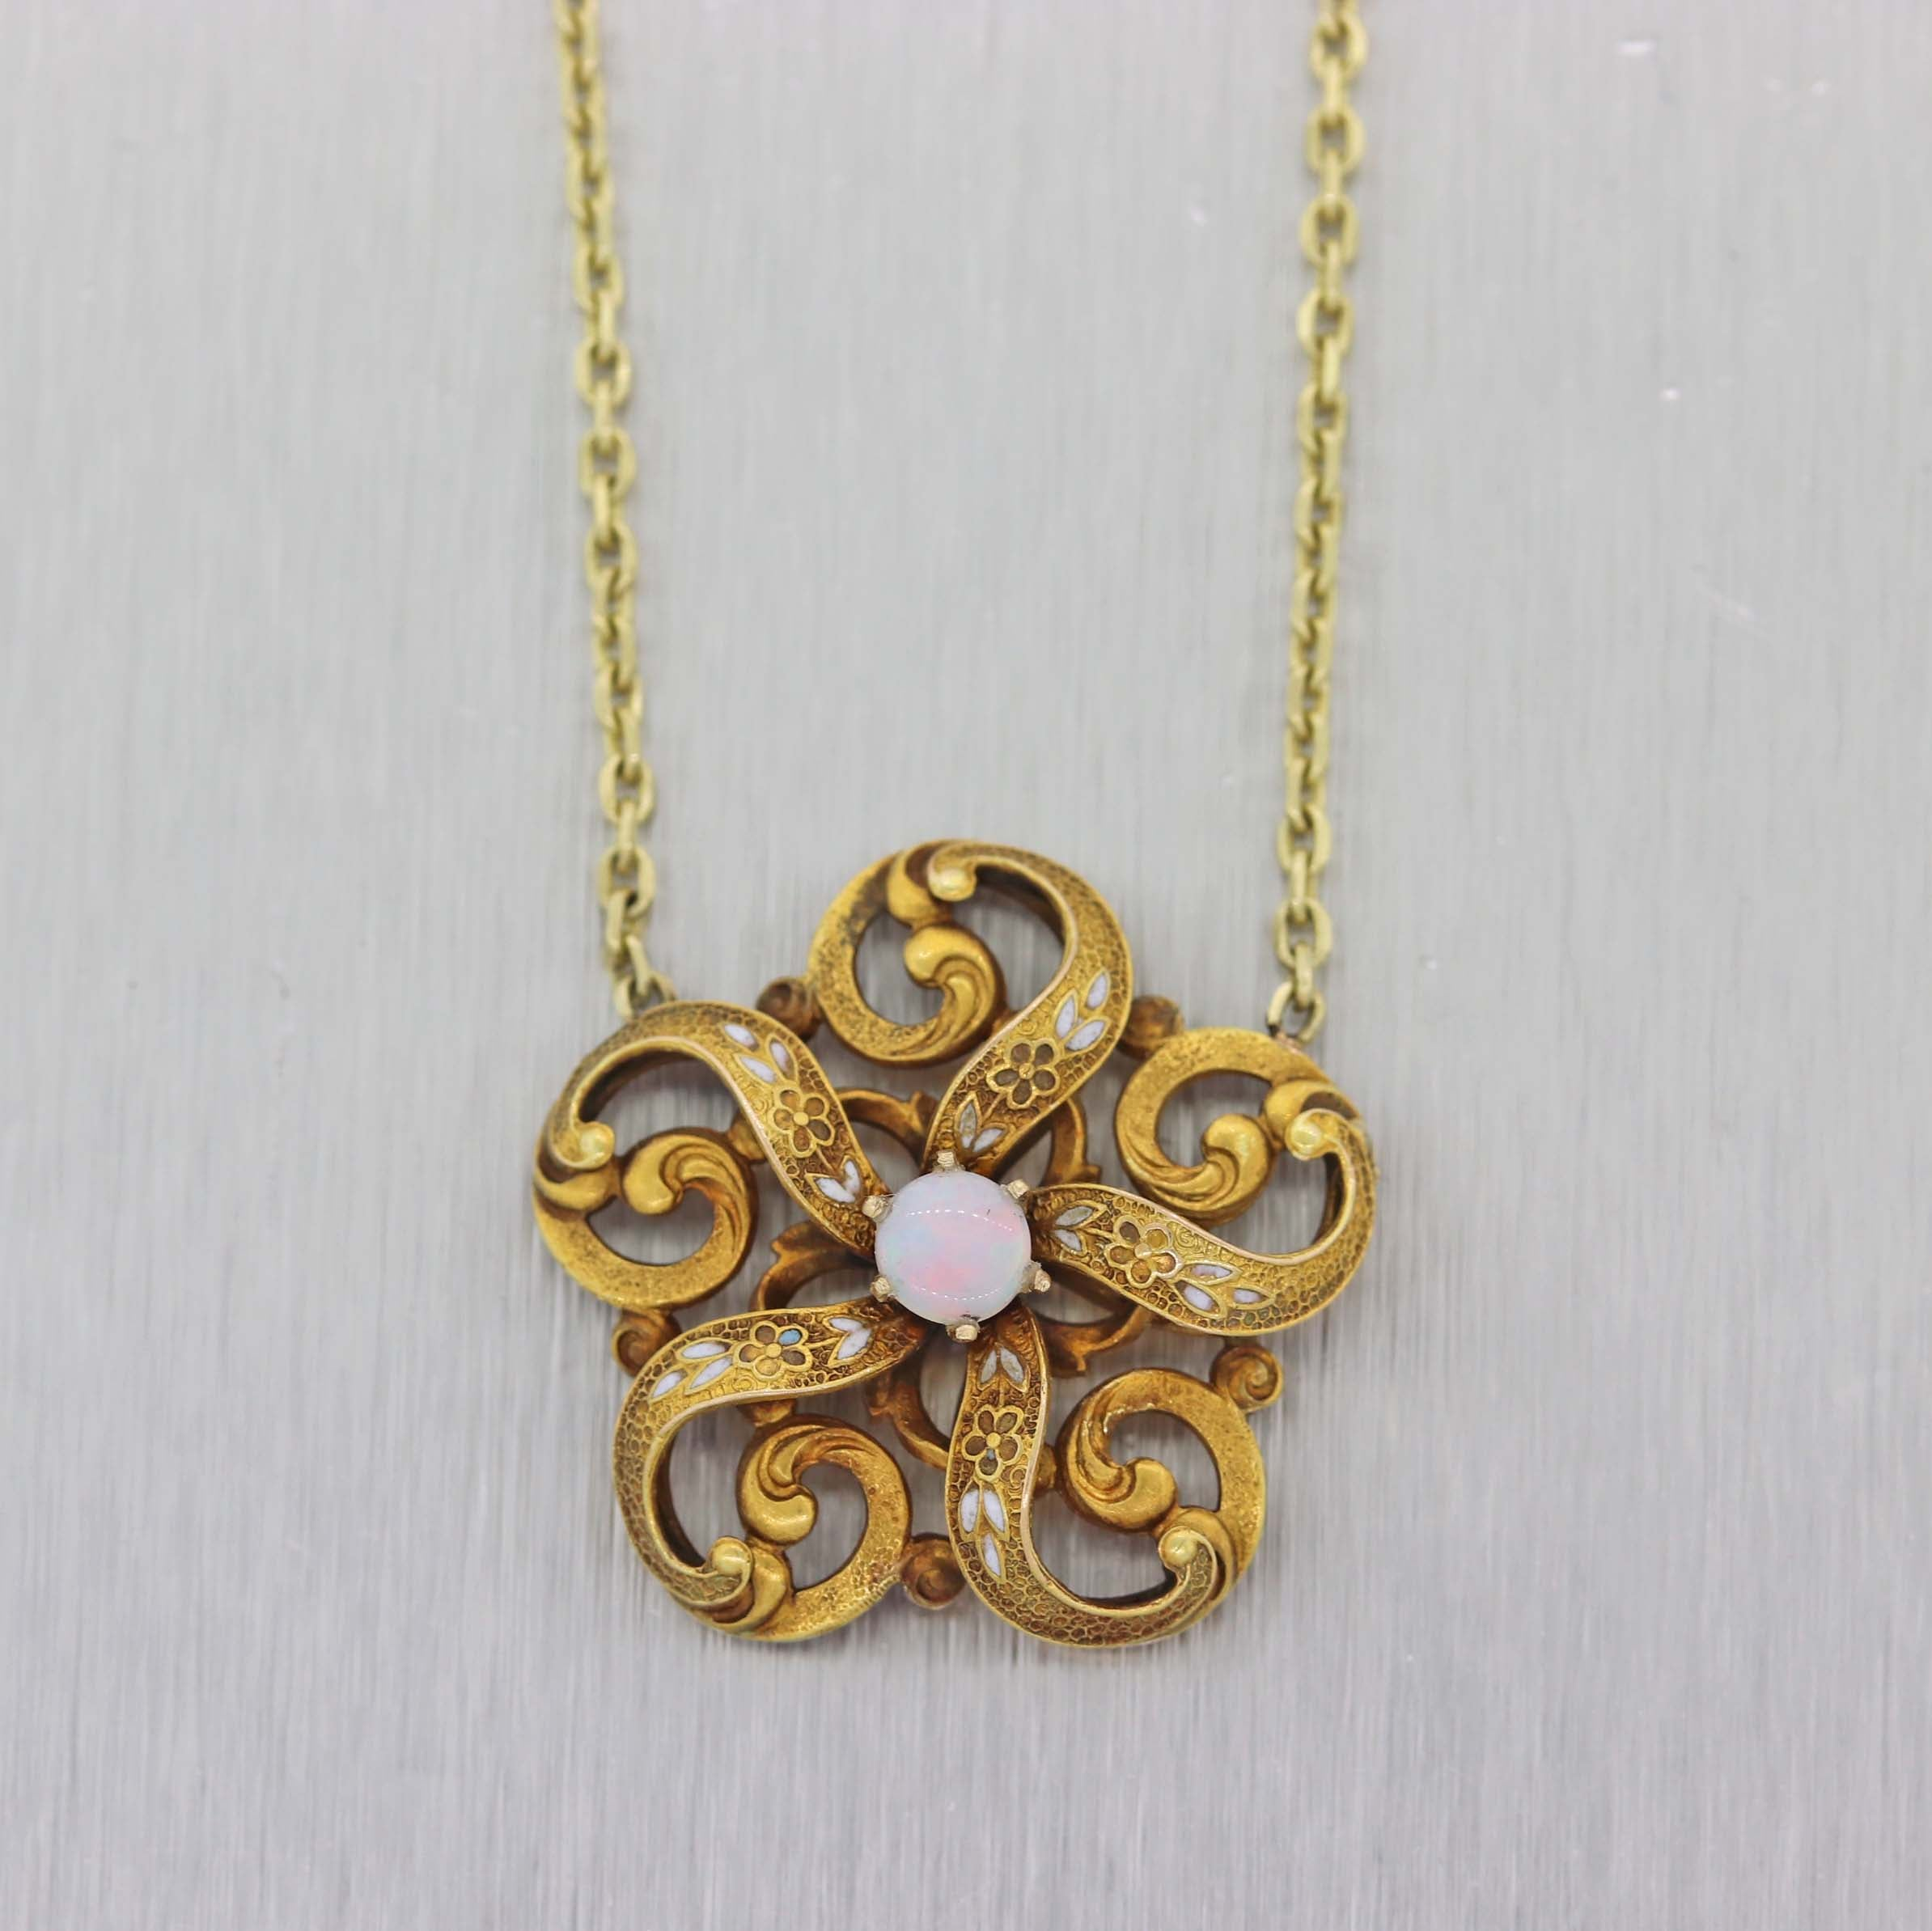 1870s Antique Victorian 14k Yellow Gold .33ct Opal Flower Pendant Chain Necklace